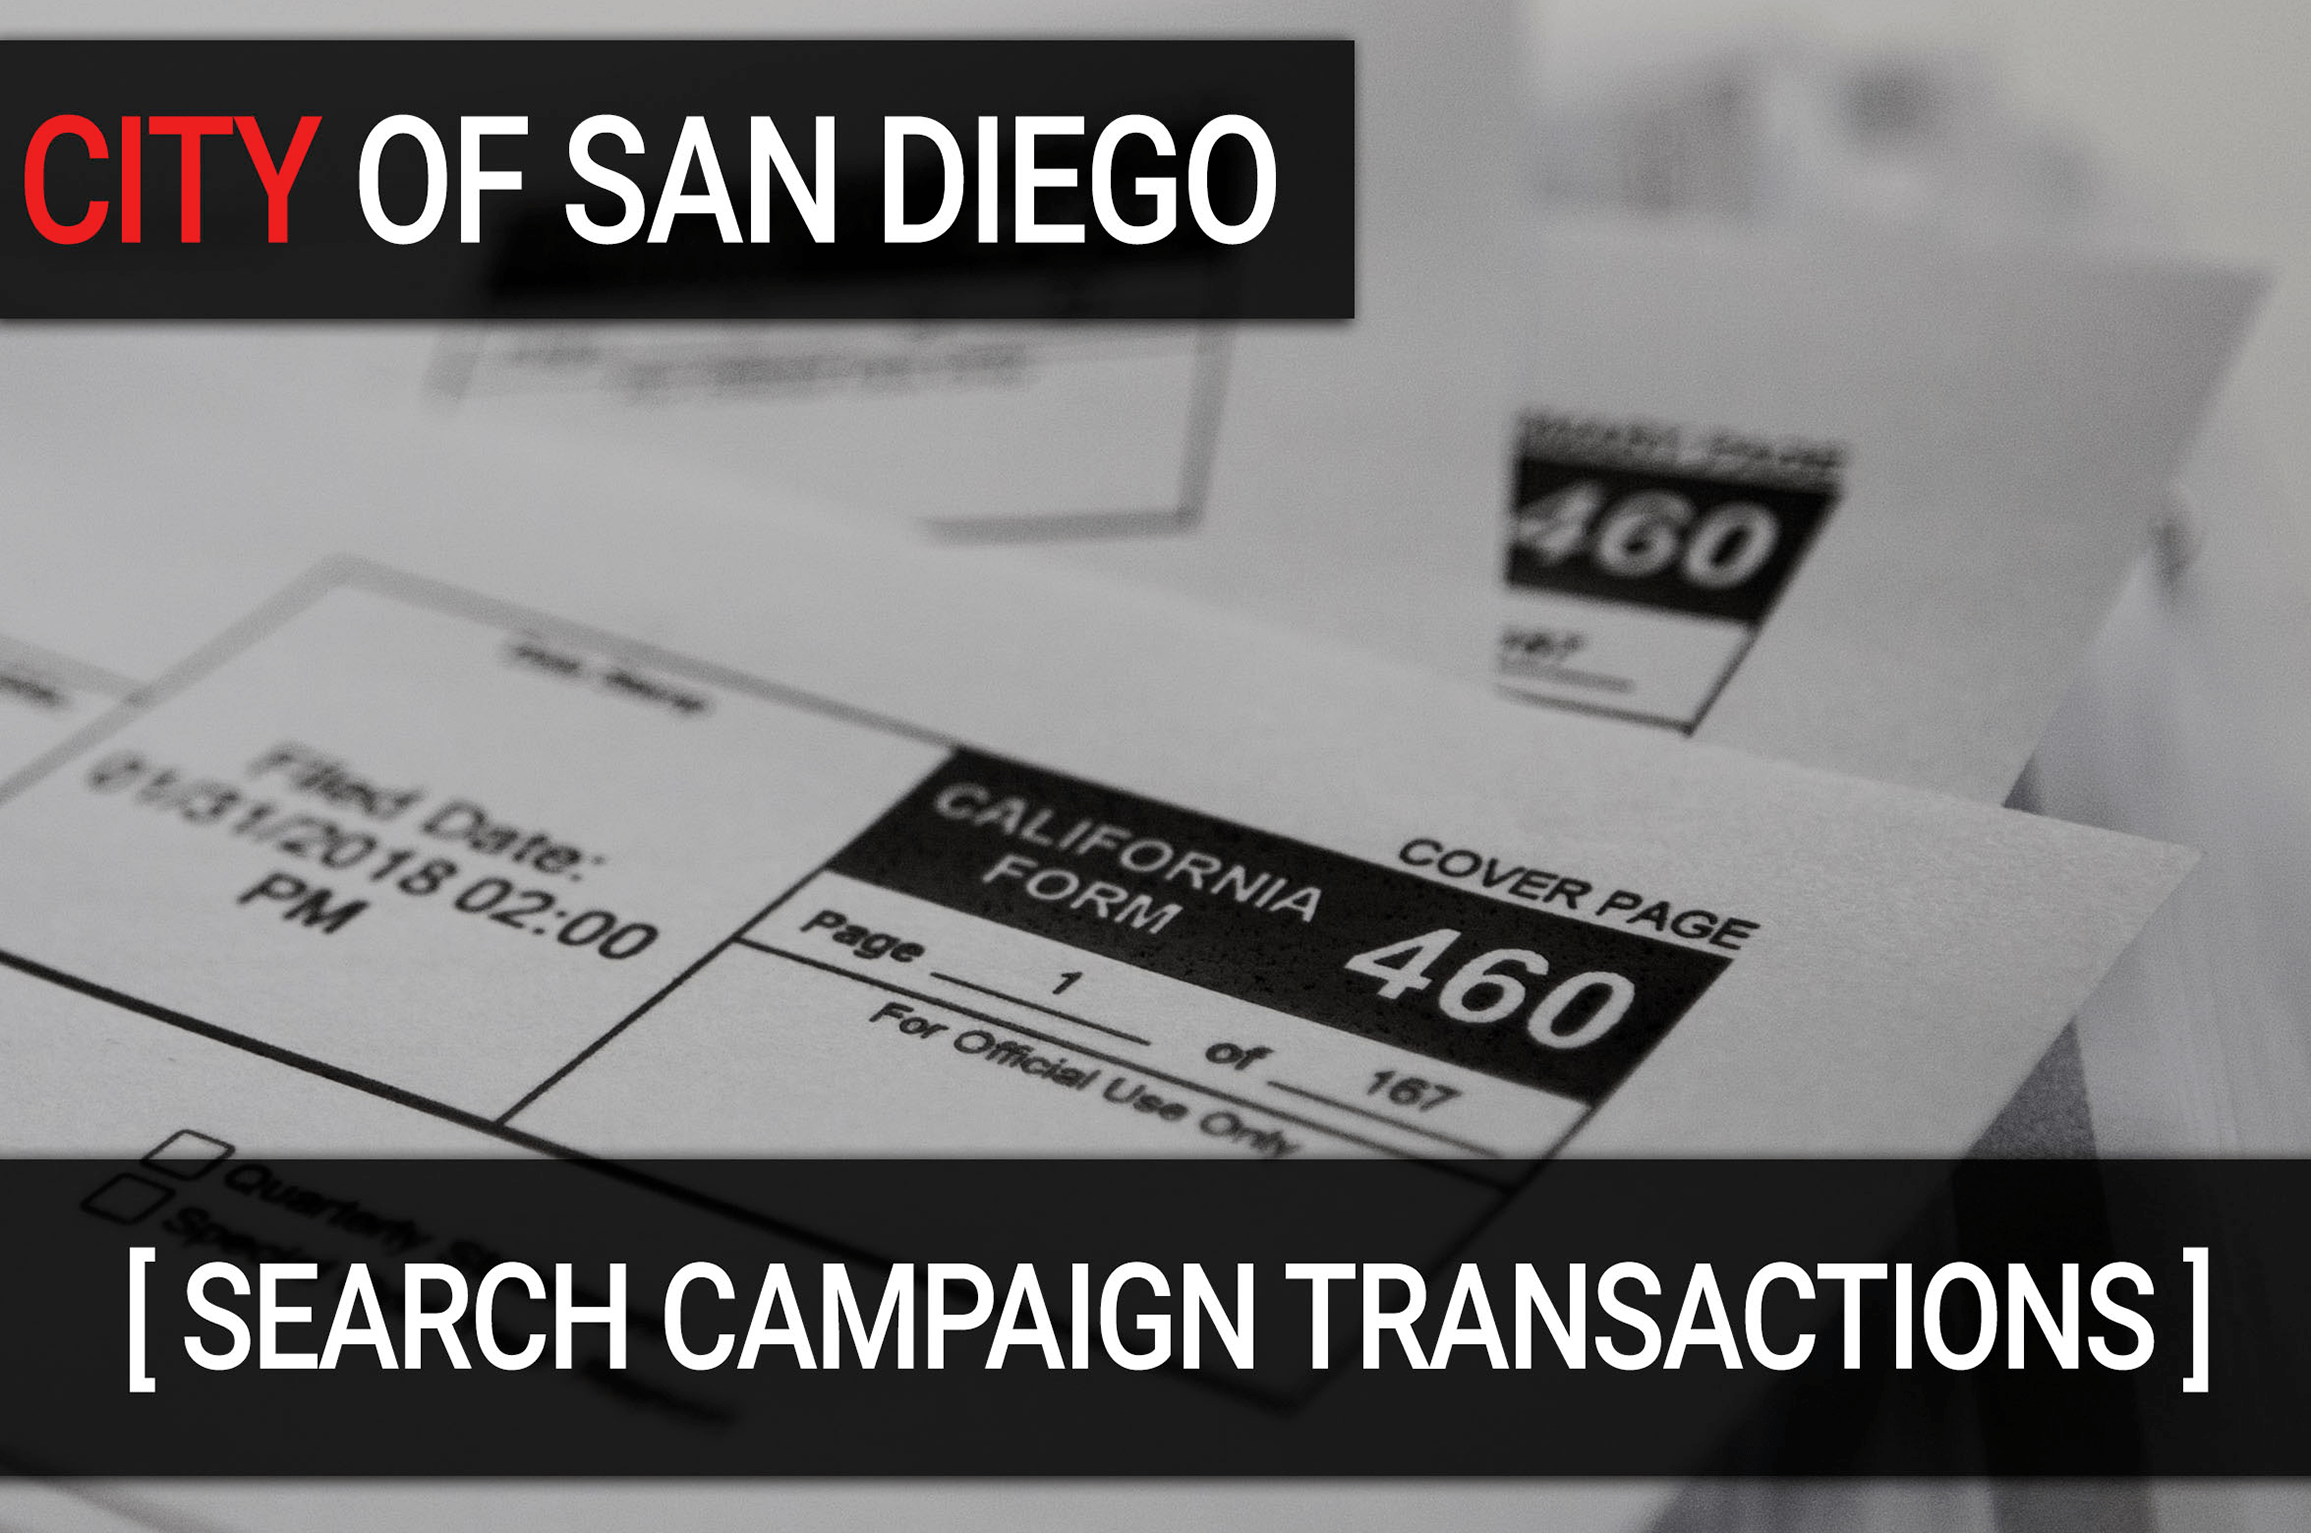 DATA: Search contributions supporting and opposing stadium ballot measures